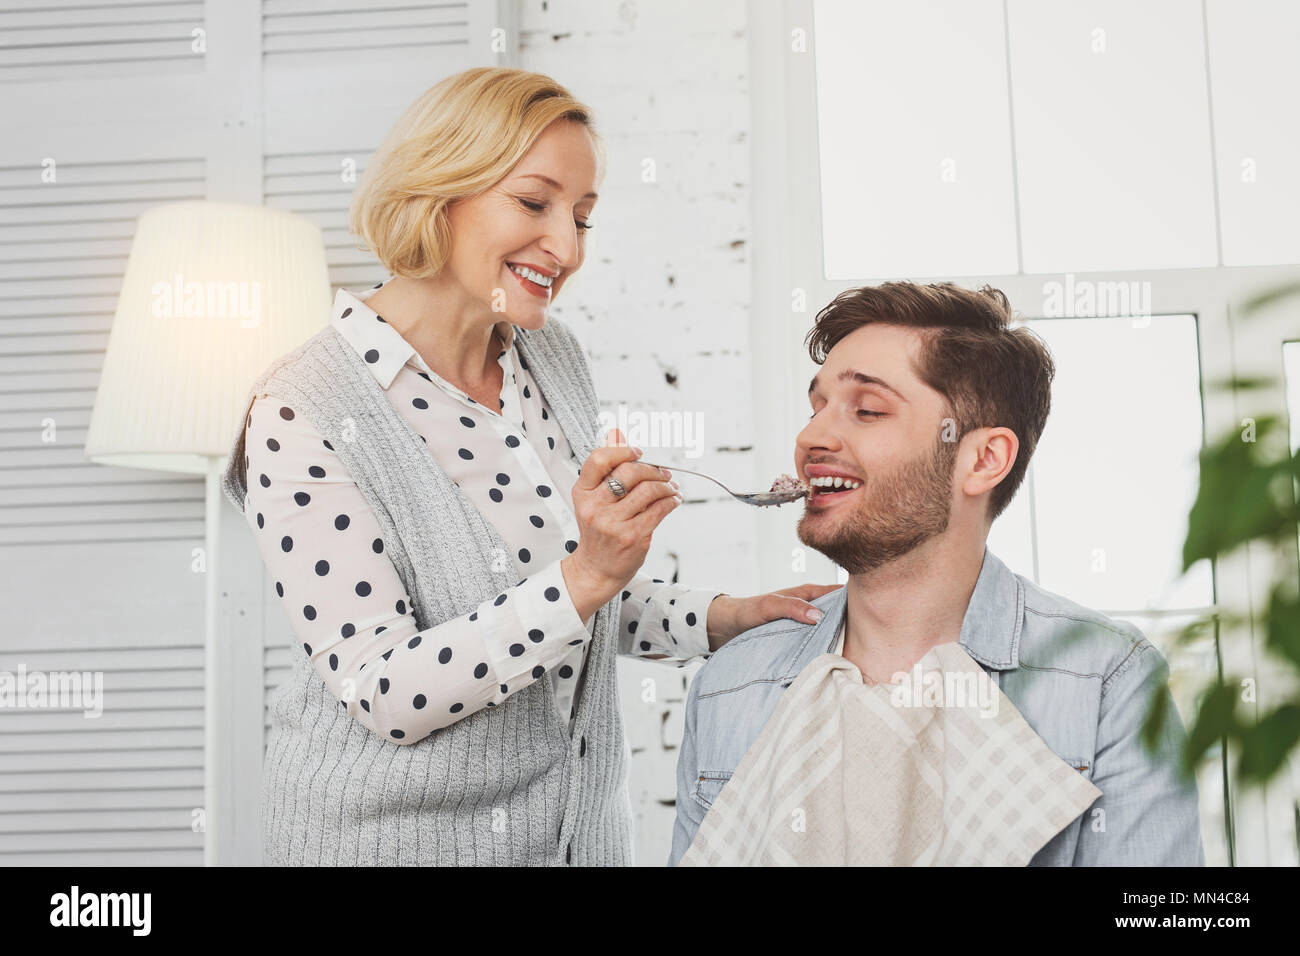 Positive aged woman feeding her son - Stock Image